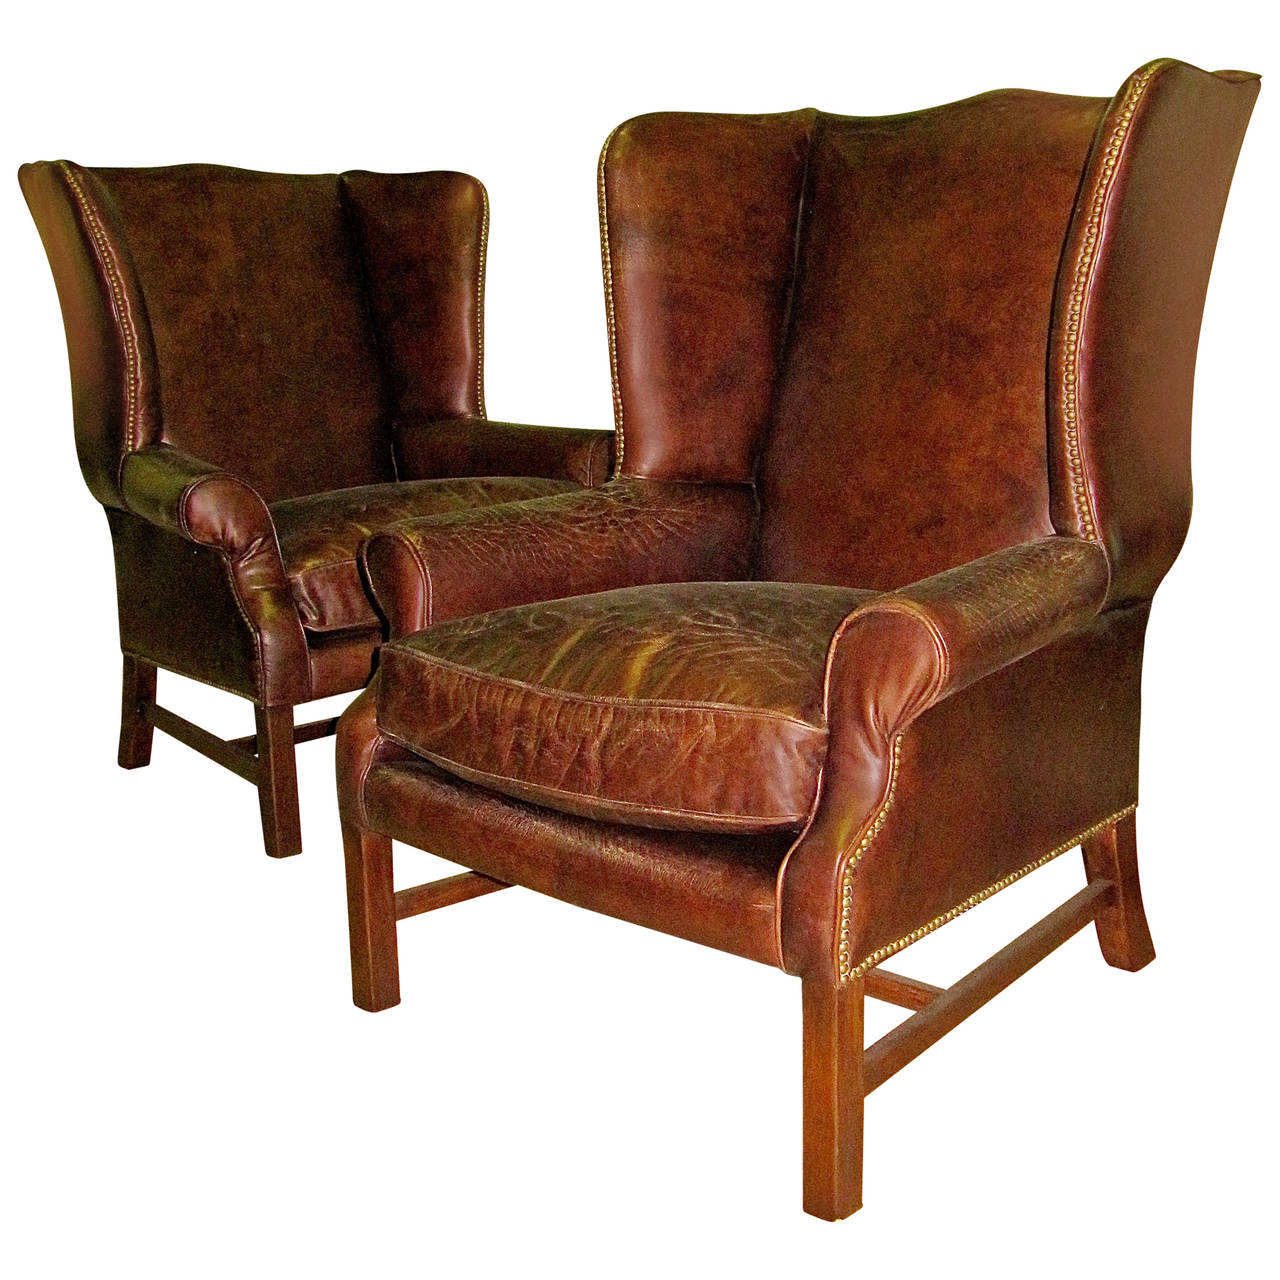 Two George Iii Style Wingback Chairs With Distressed Leather For